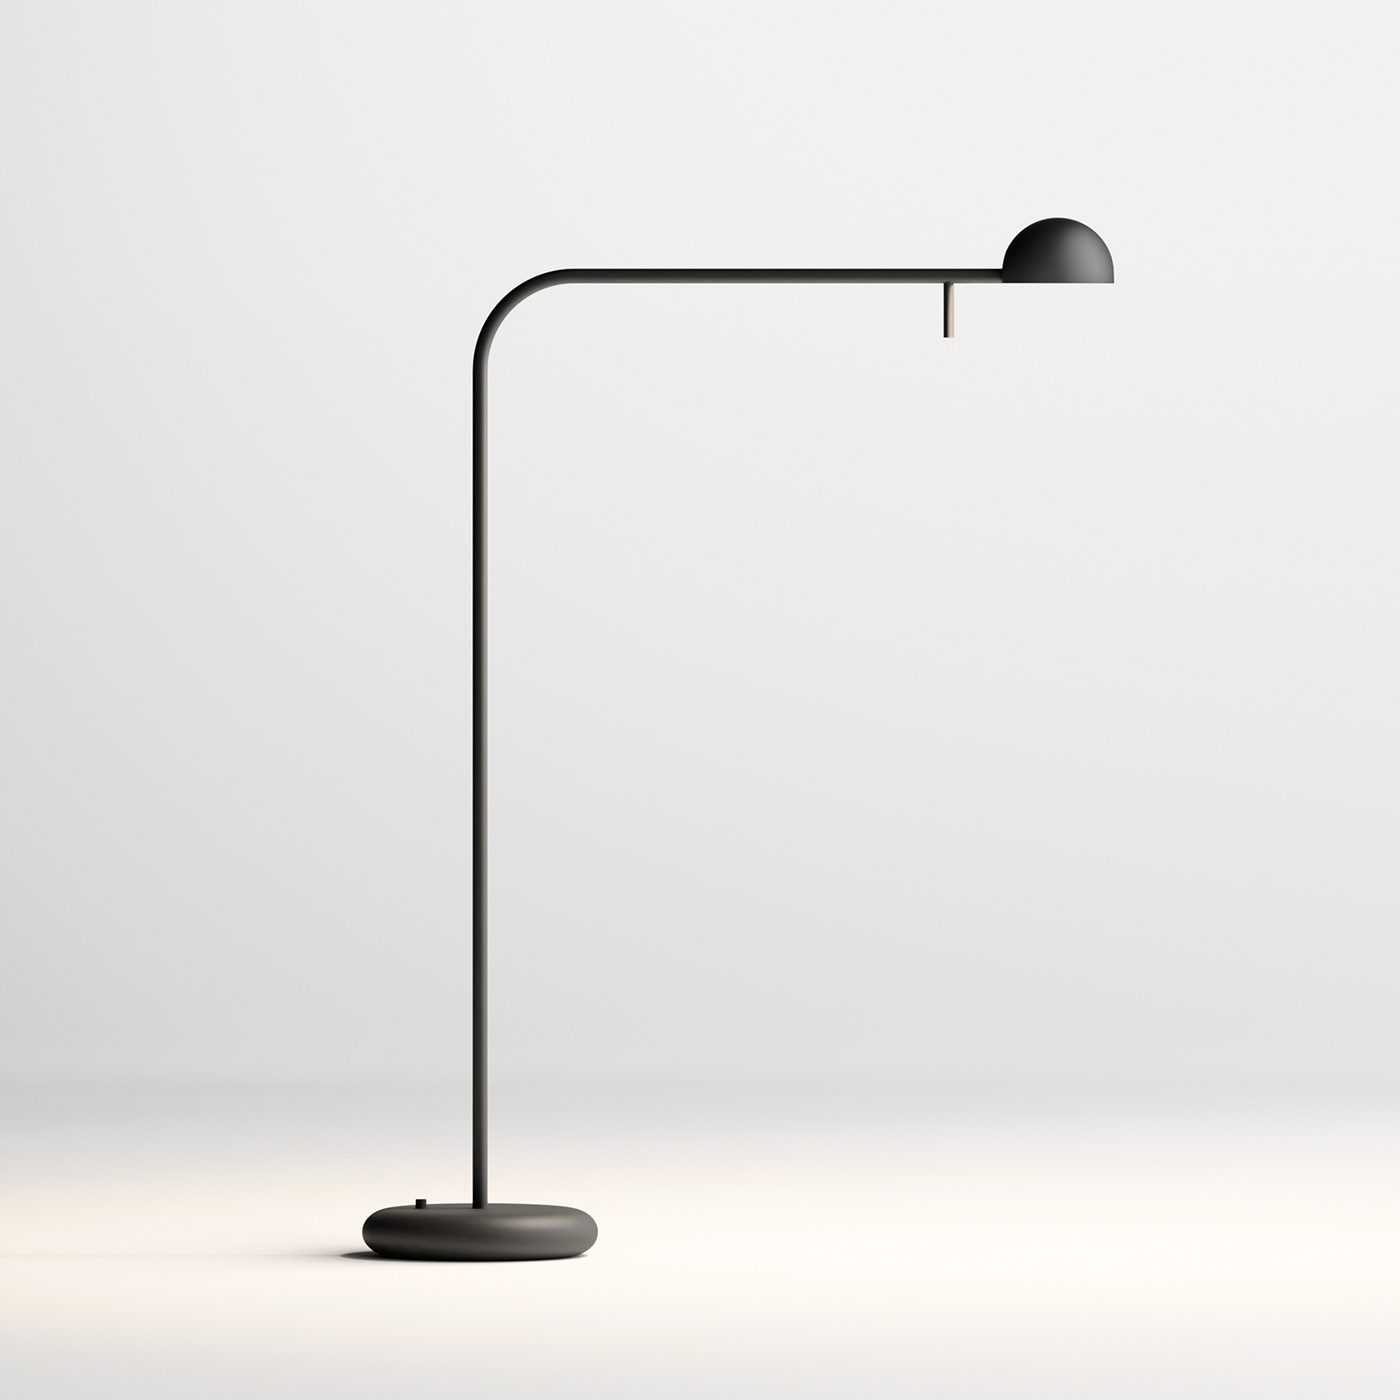 Pin table lamp in black by Vibia